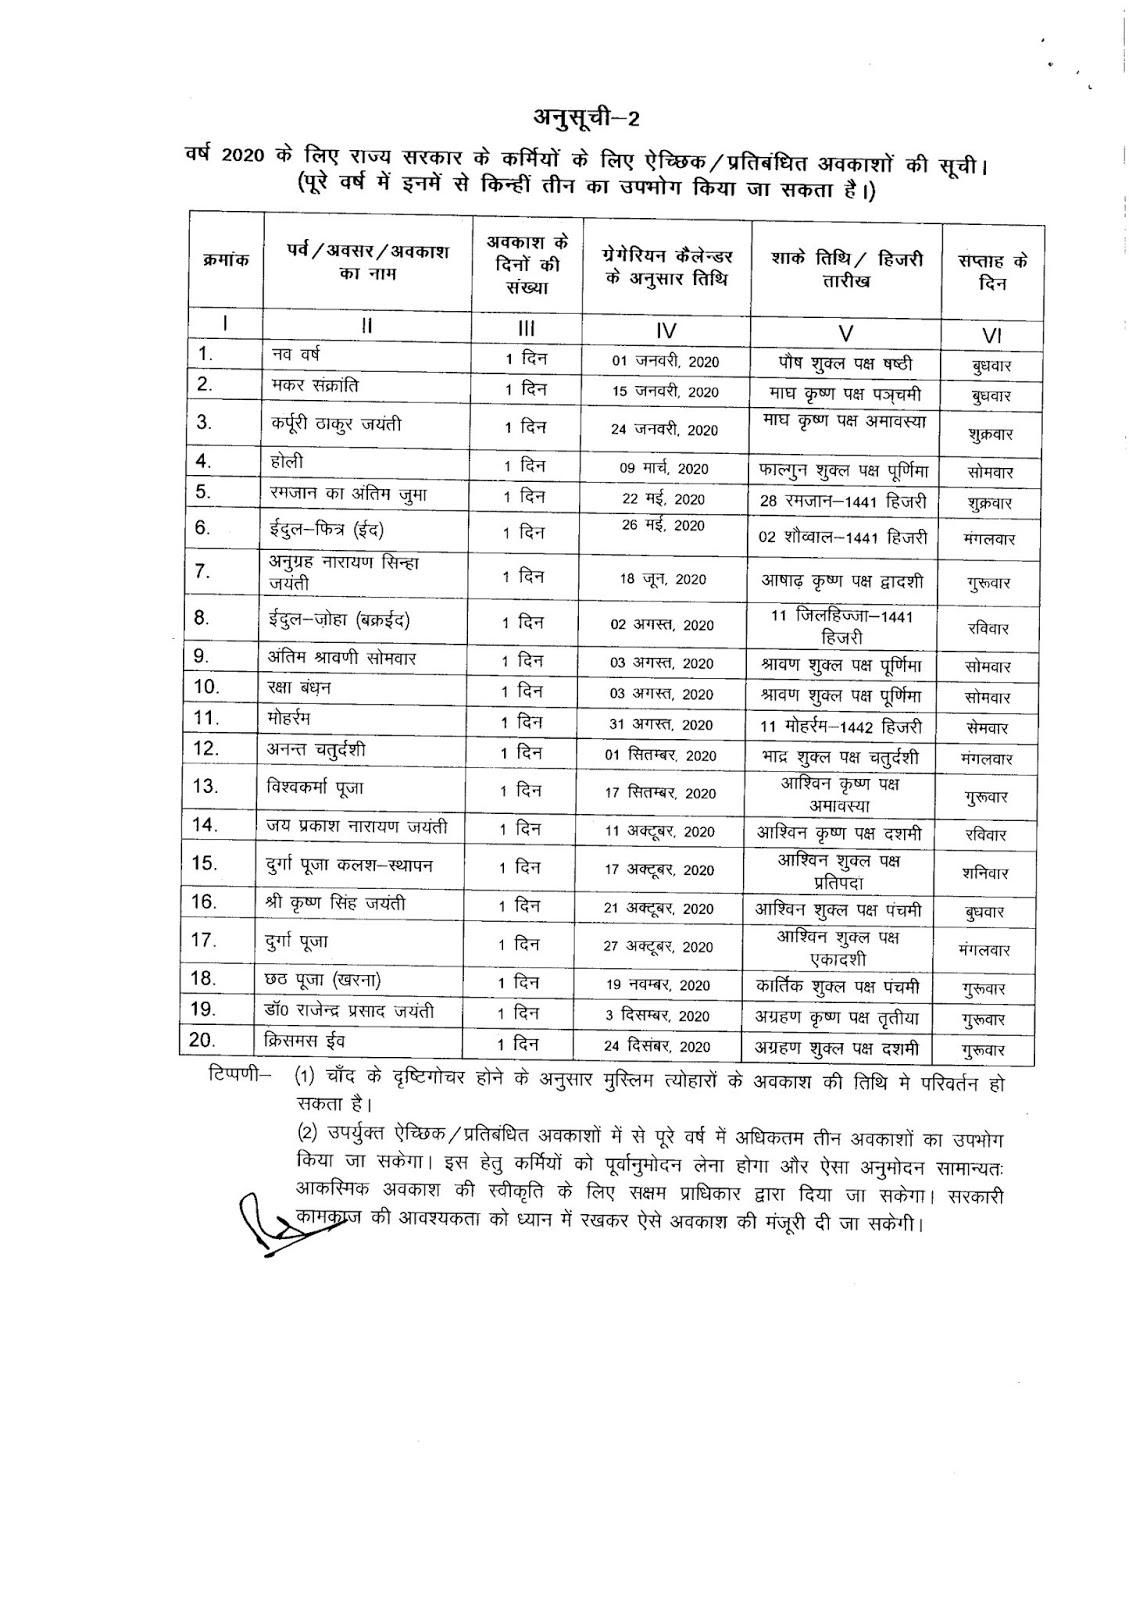 Bihar Goverment Calender 2020 | Calendar For Planning throughout Bihar Government Holiday Calendar